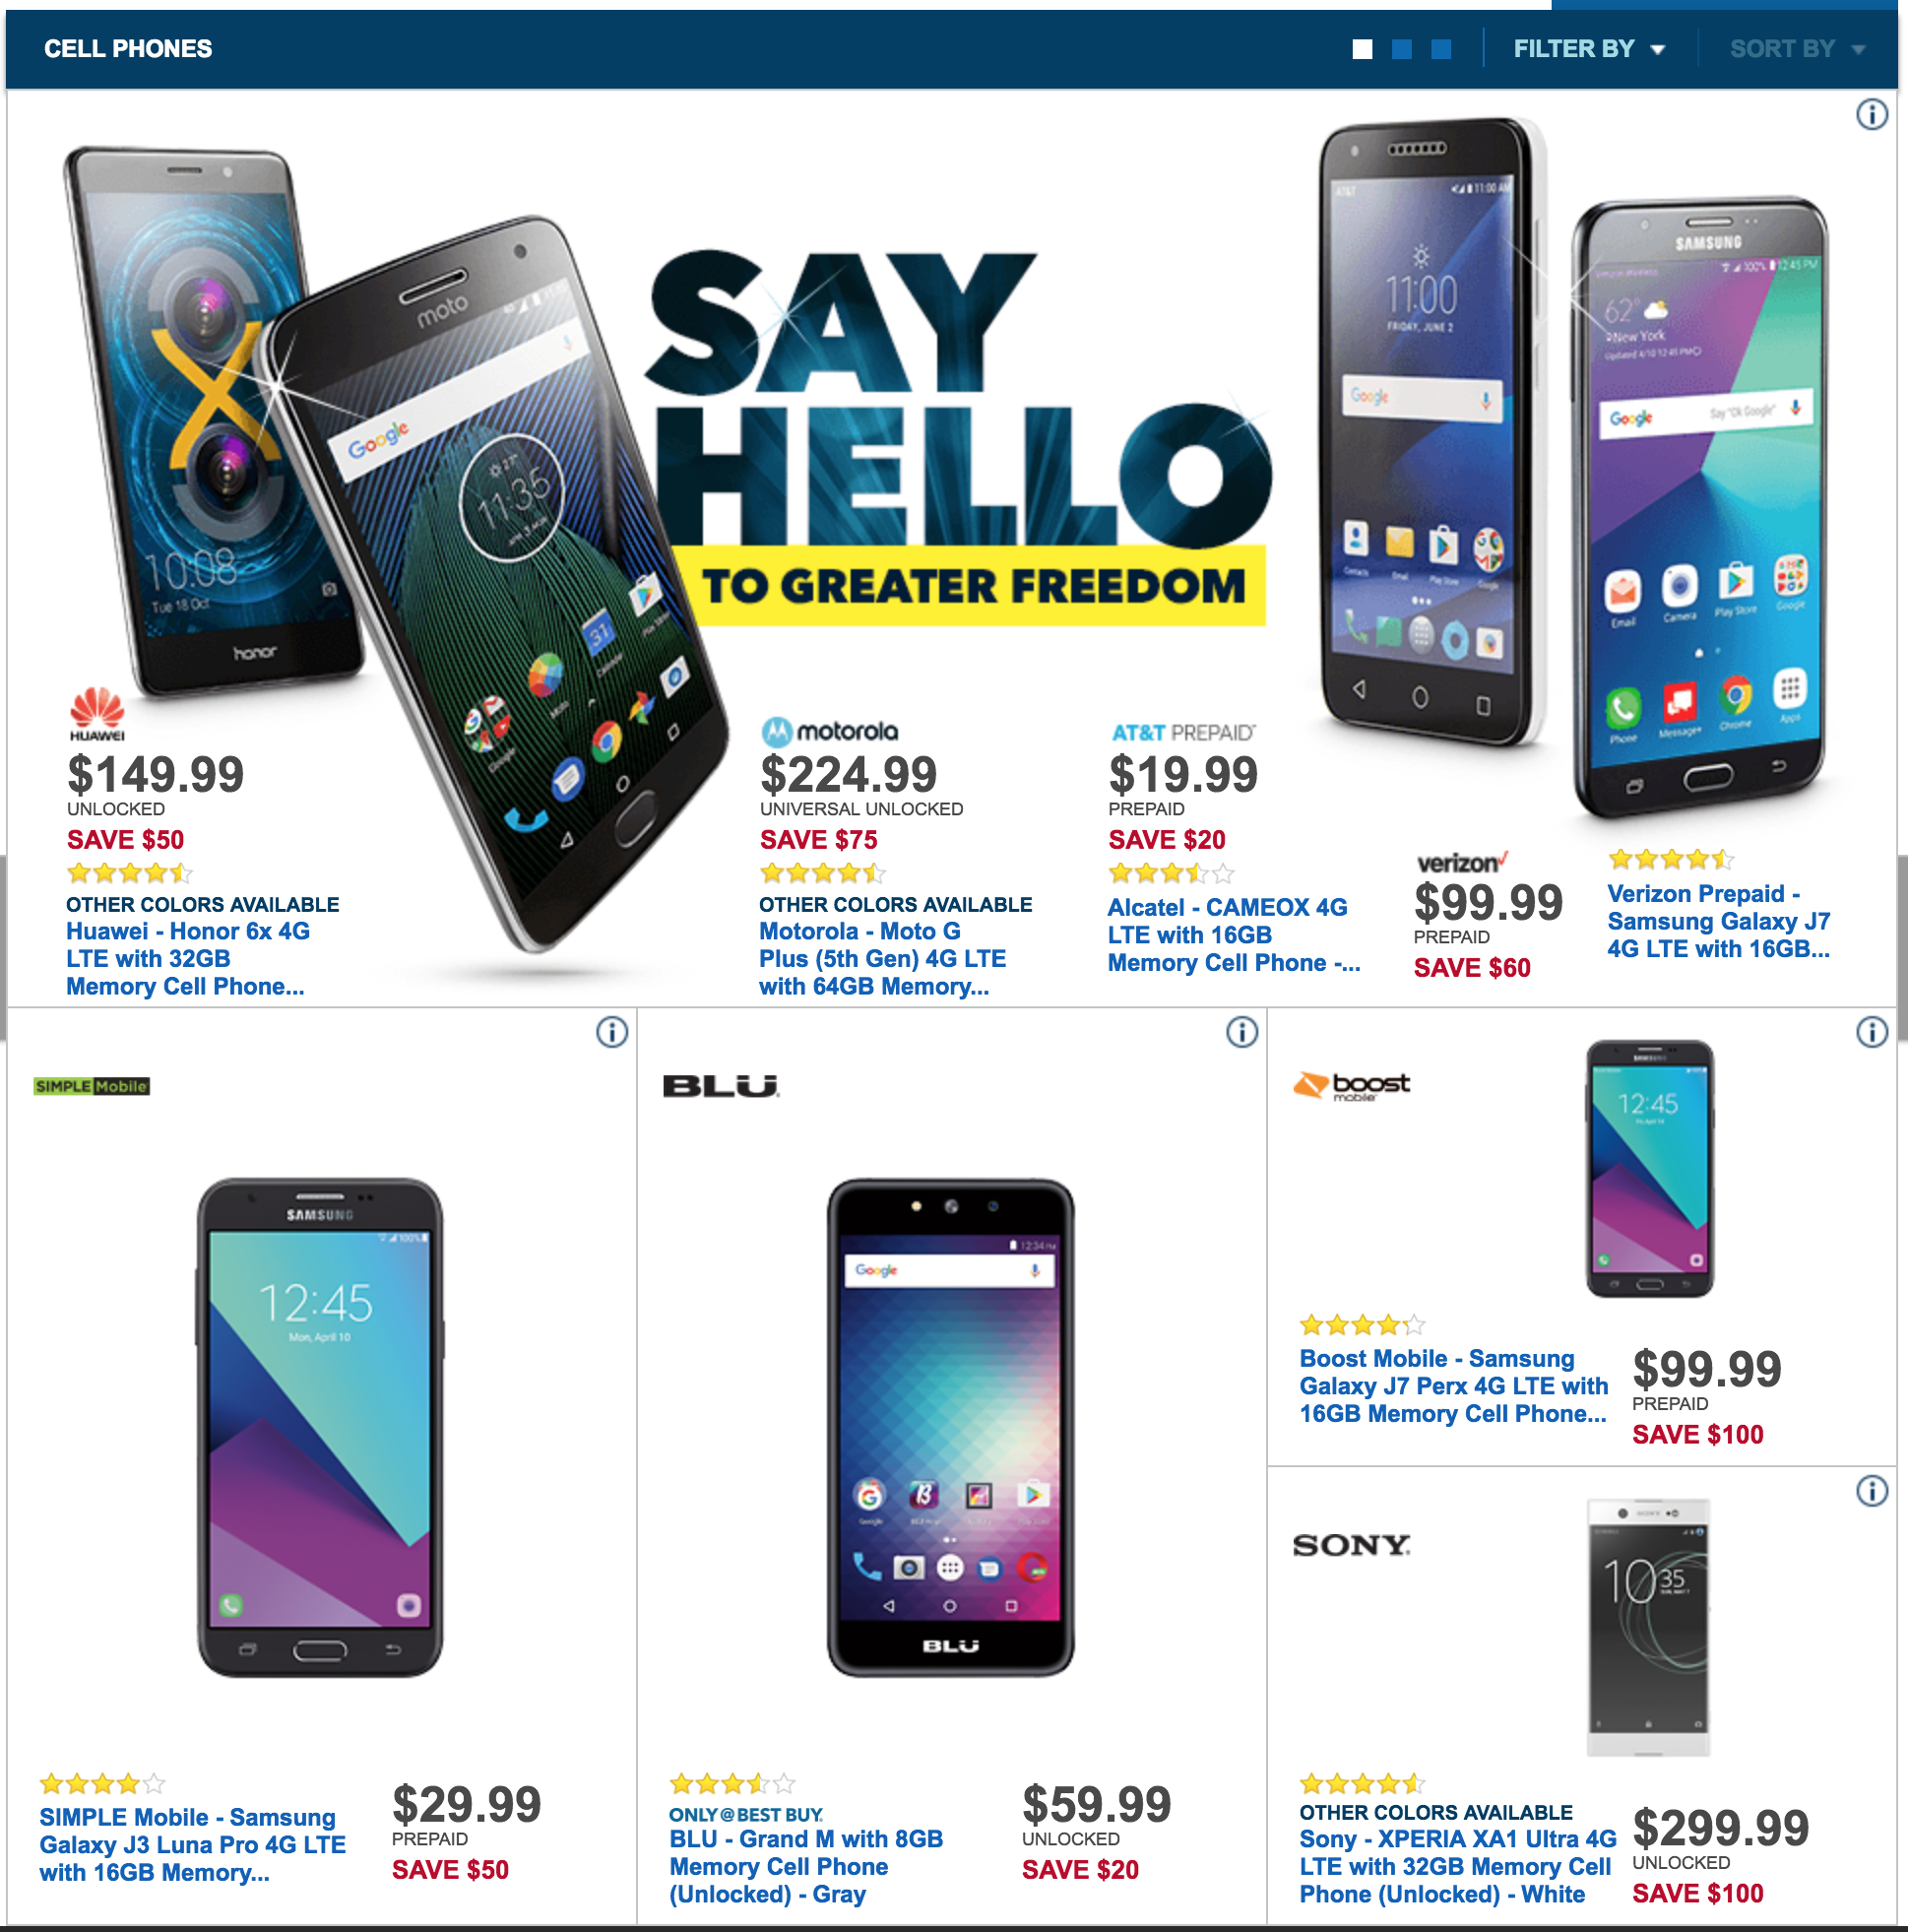 47e7f7d0824bea Here are some of Best Buy's Black Friday deals you should check out